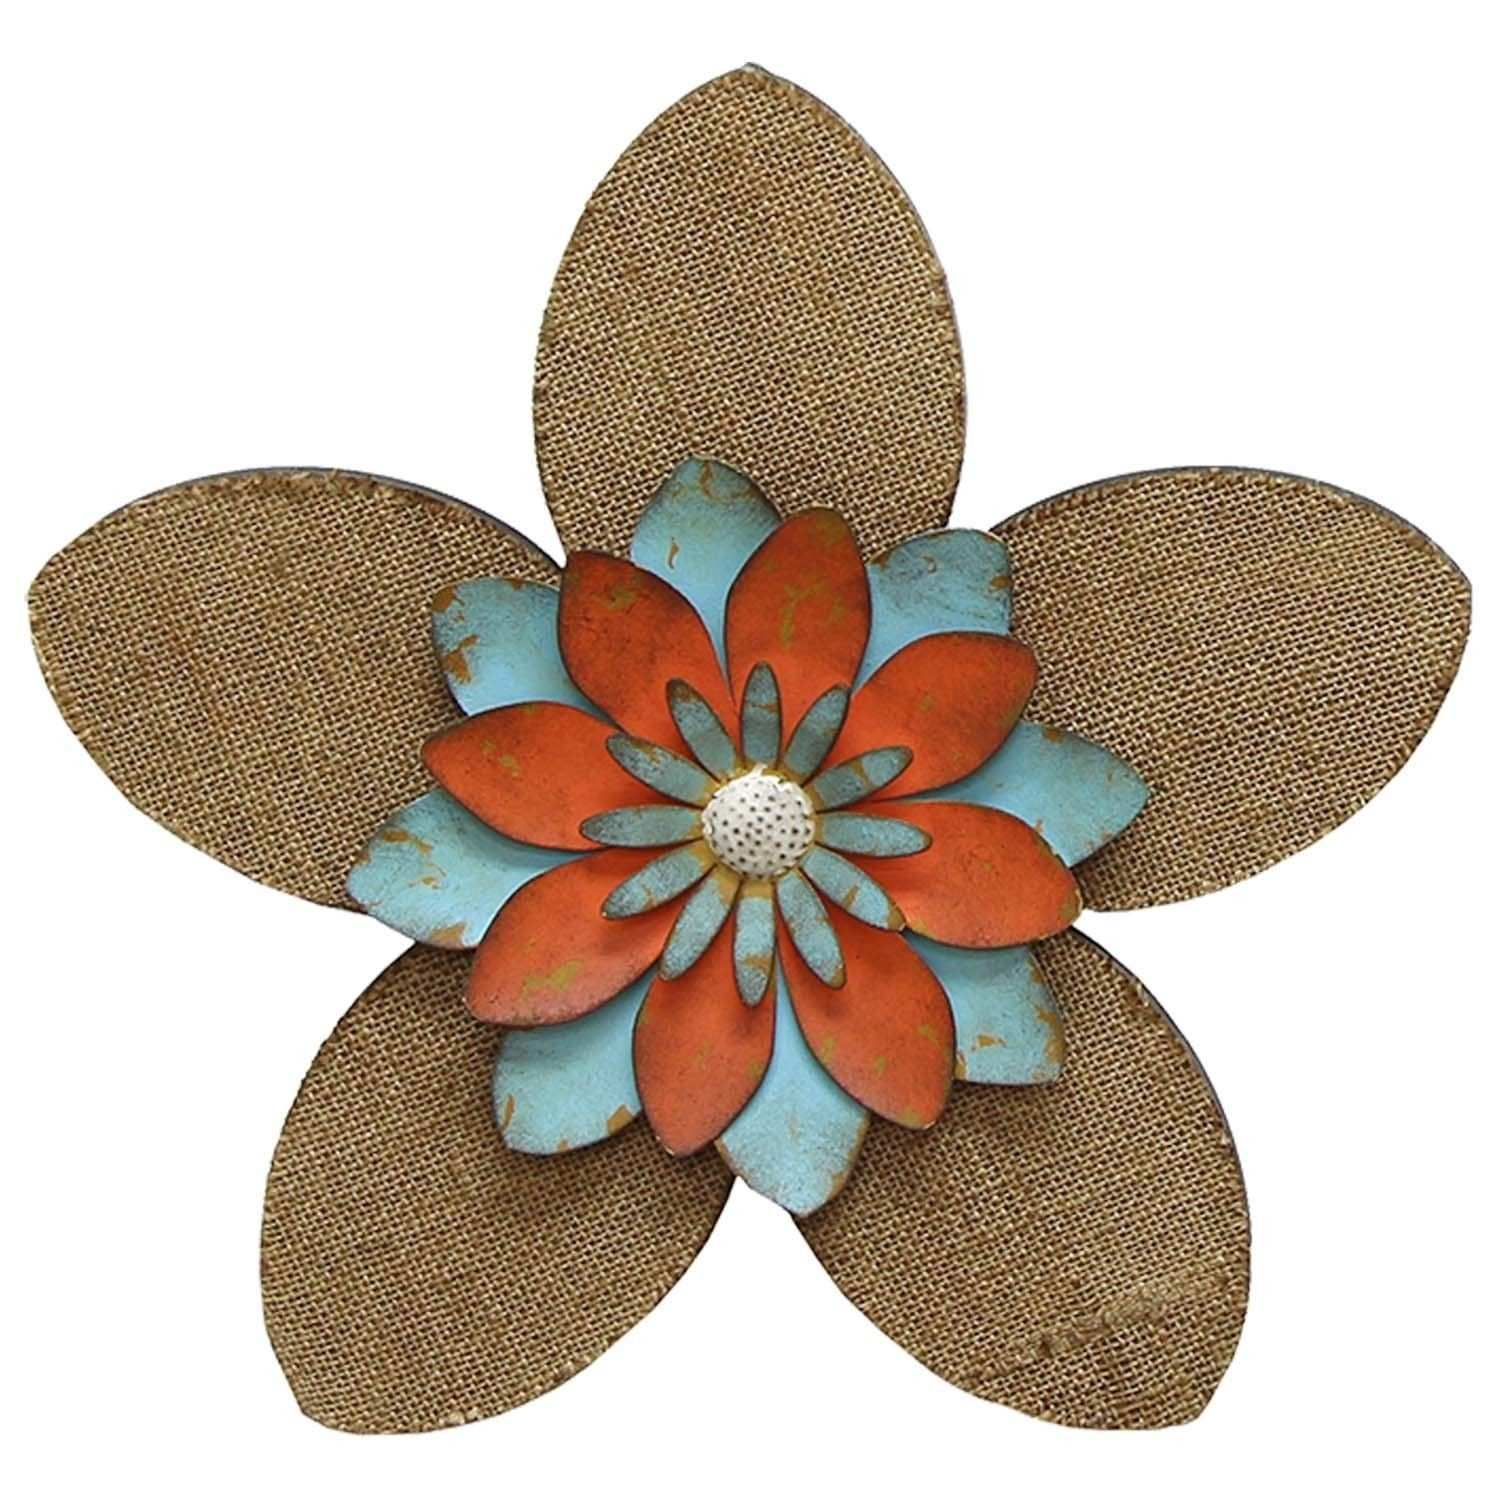 Stratton Home Decor Multi color Burlap MDF Metal Flower Wall Decor